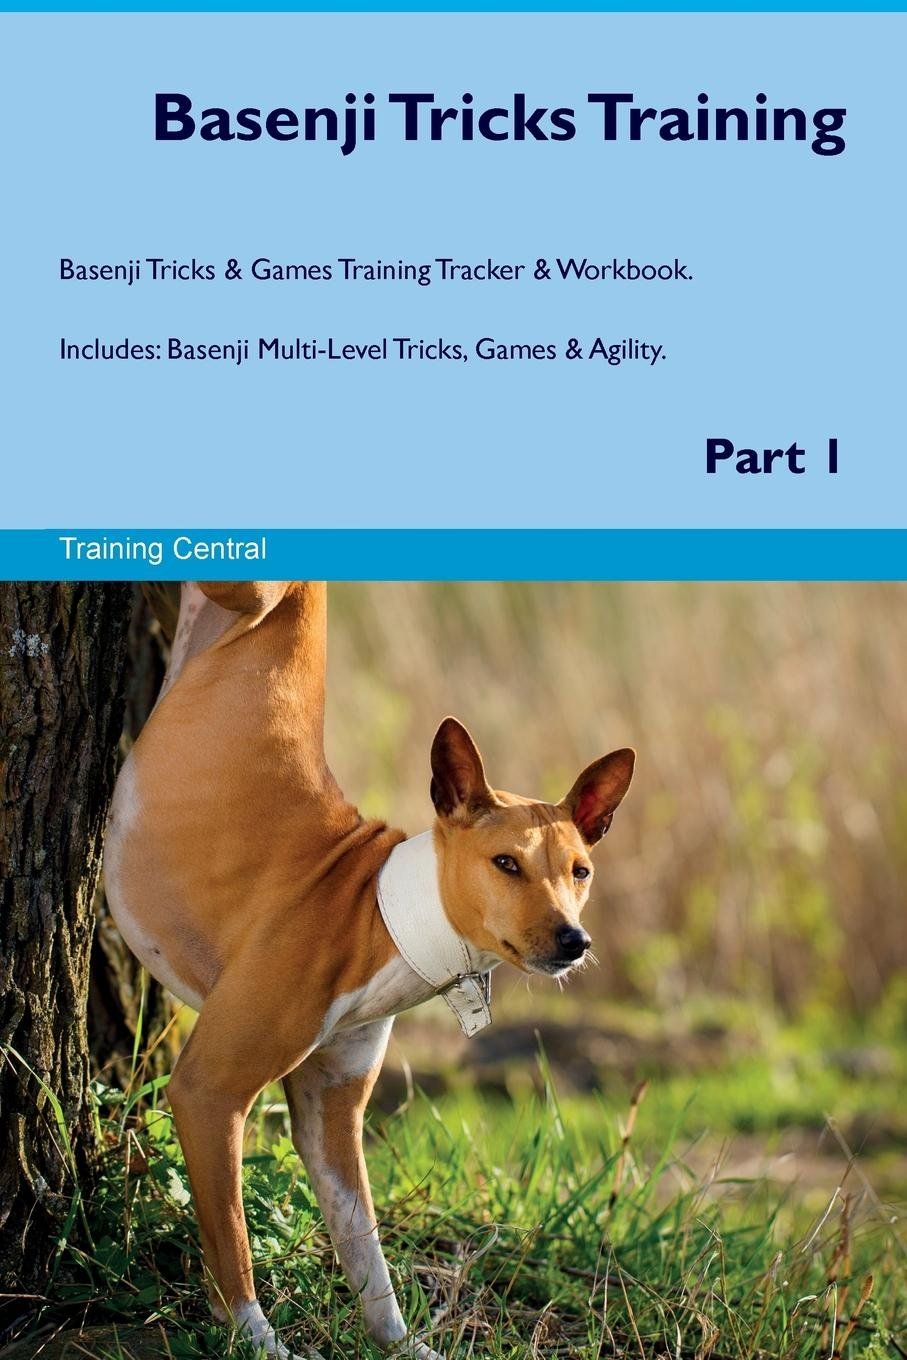 Basenji Tricks Training Basenji Tricks & Games Training Tracker & Workbook. Includes: Basenji Multi-Level Tricks, Games…